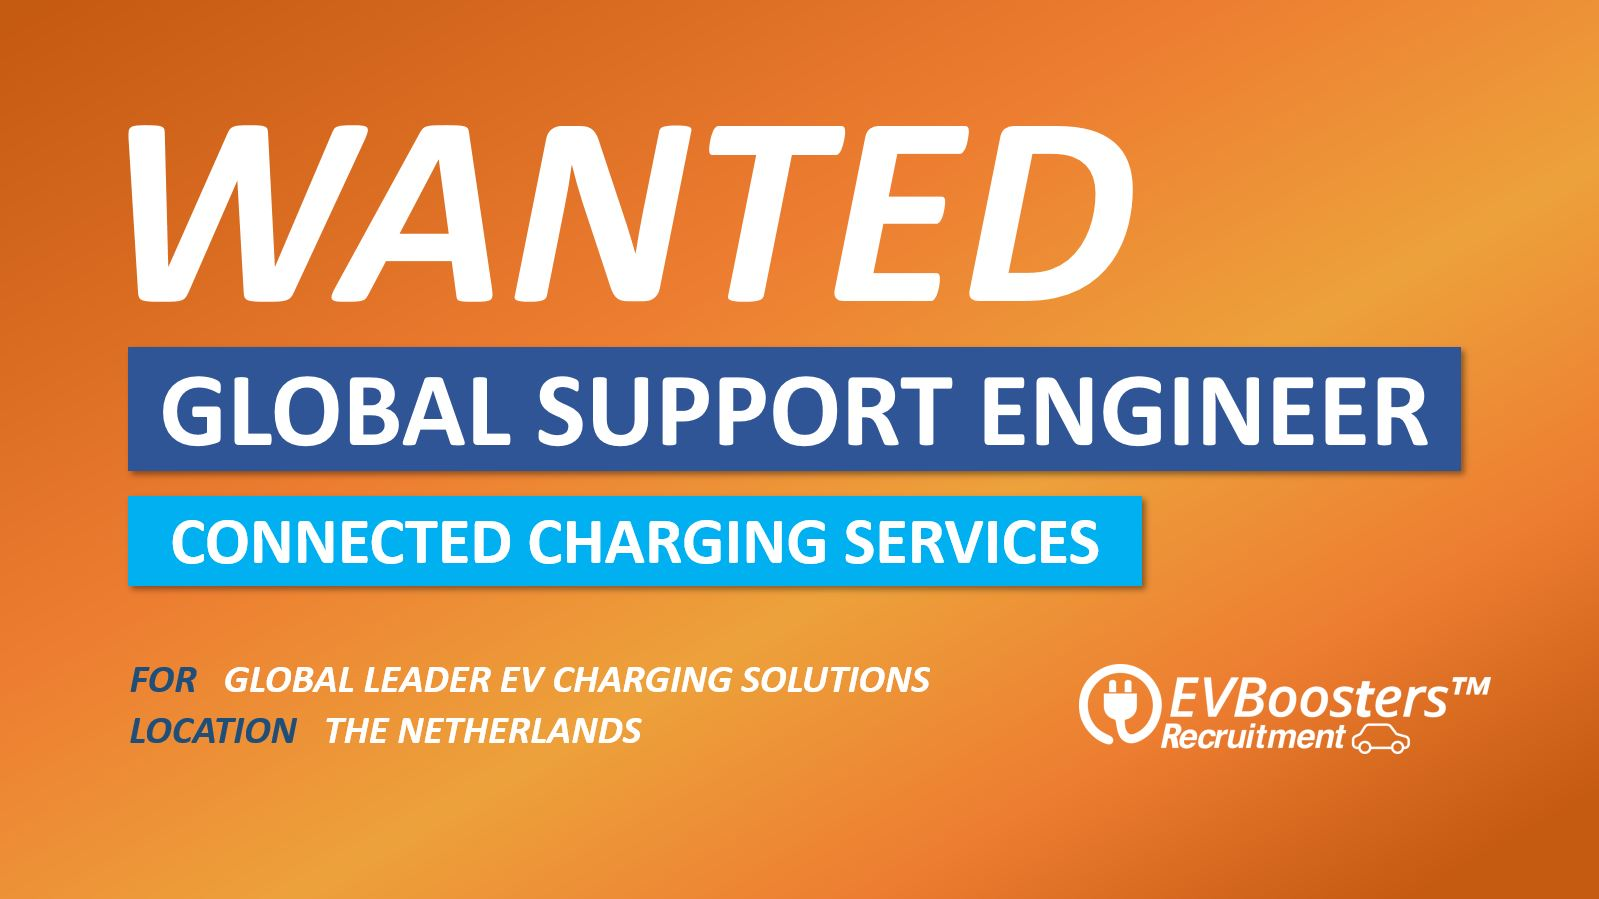 Global Support Engineer Connected Charging Services